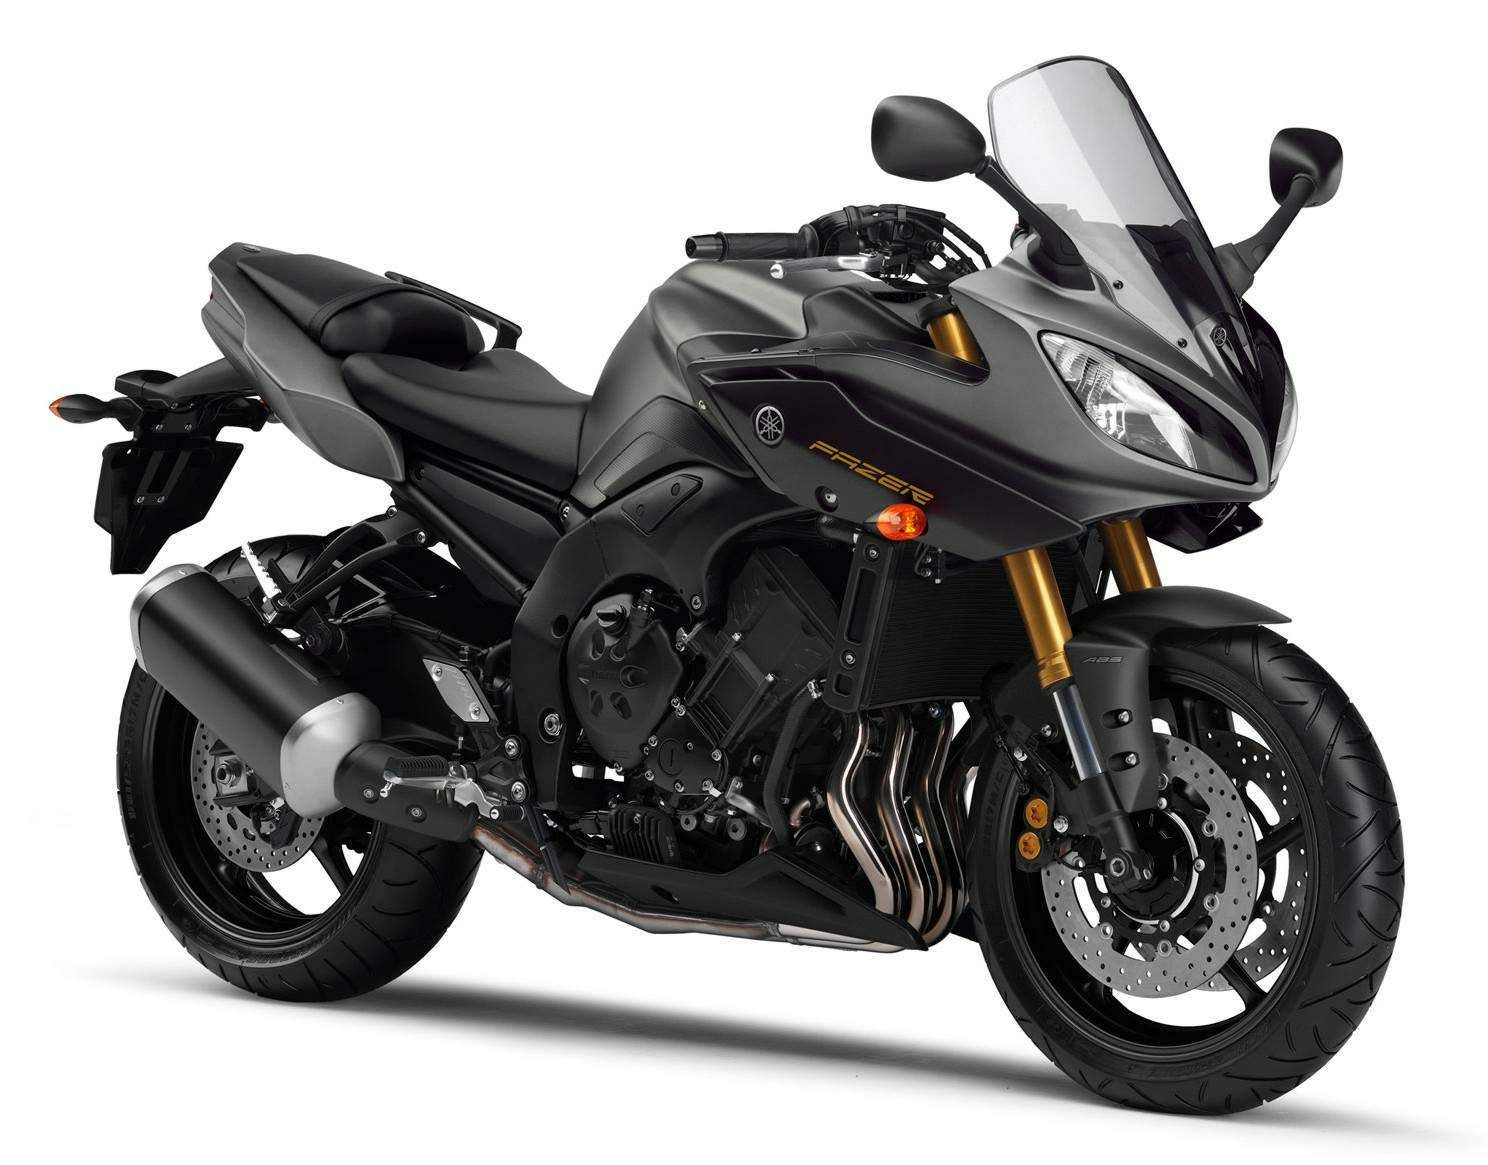 The Yamaha Fazer Is The Best Competitor Of The 180cc Regime Bikes